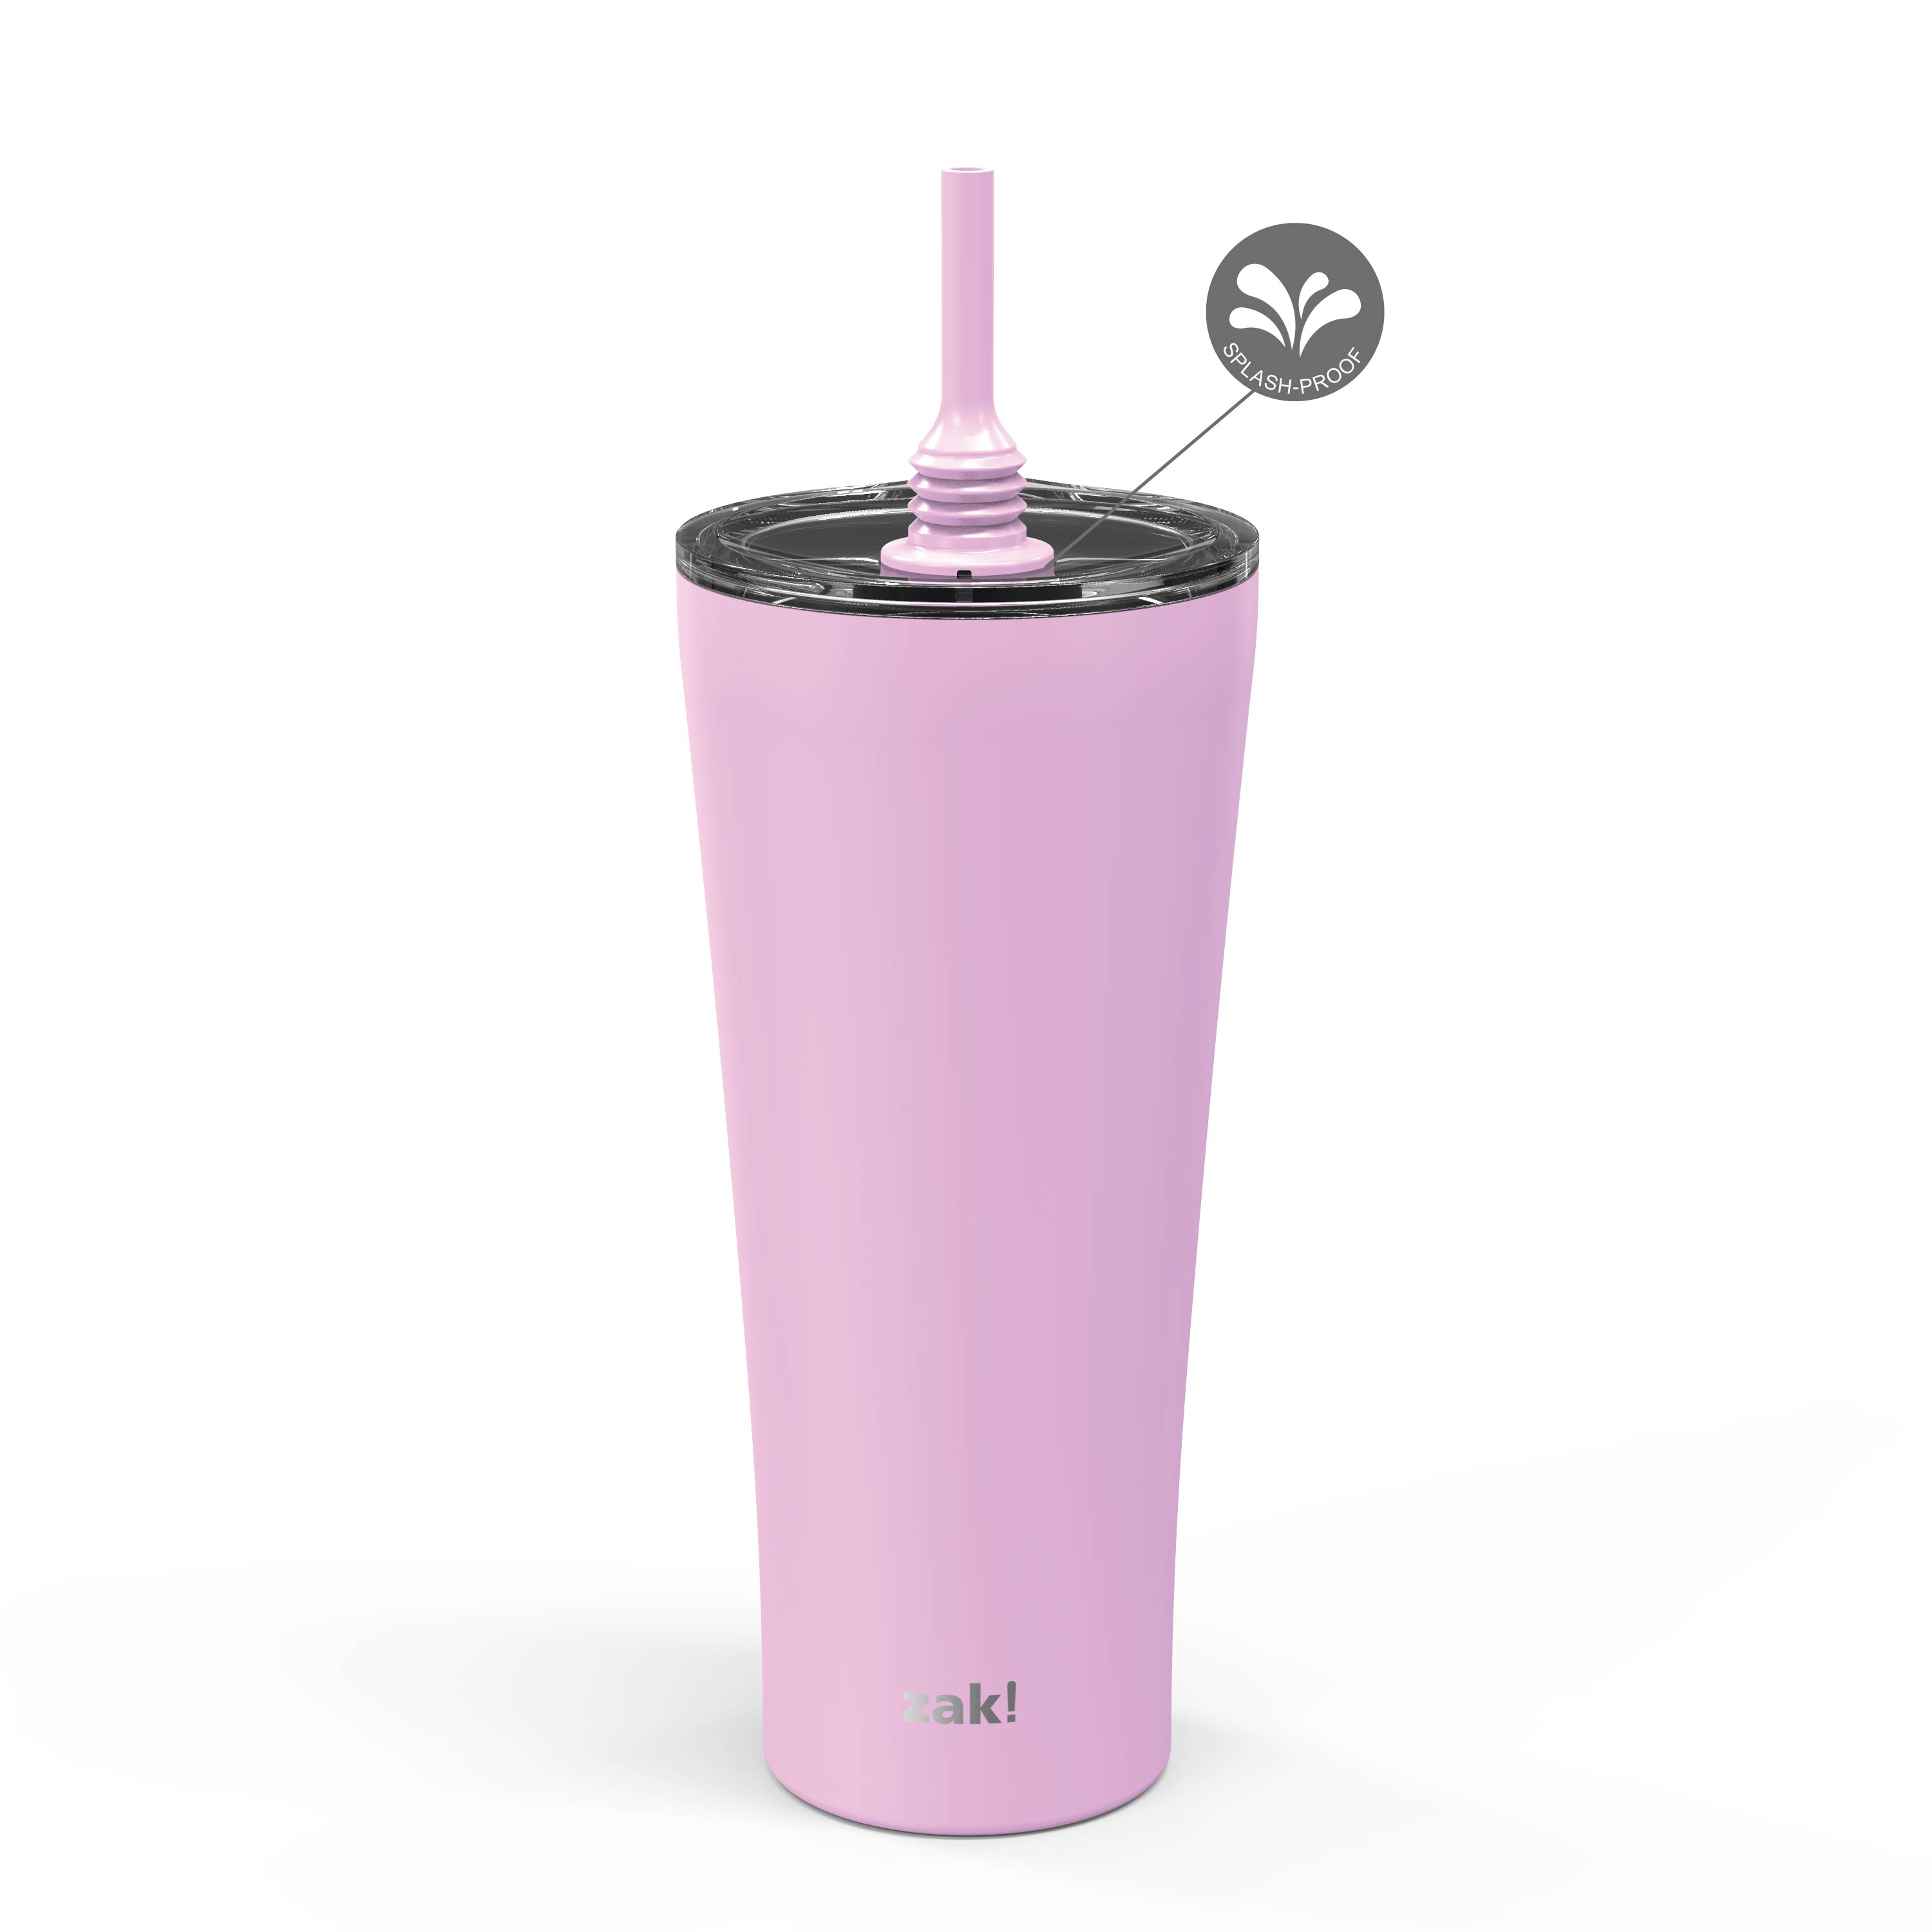 Alfalfa 30 ounce Vacuum Insulated Stainless Steel Tumbler, Lilac slideshow image 1